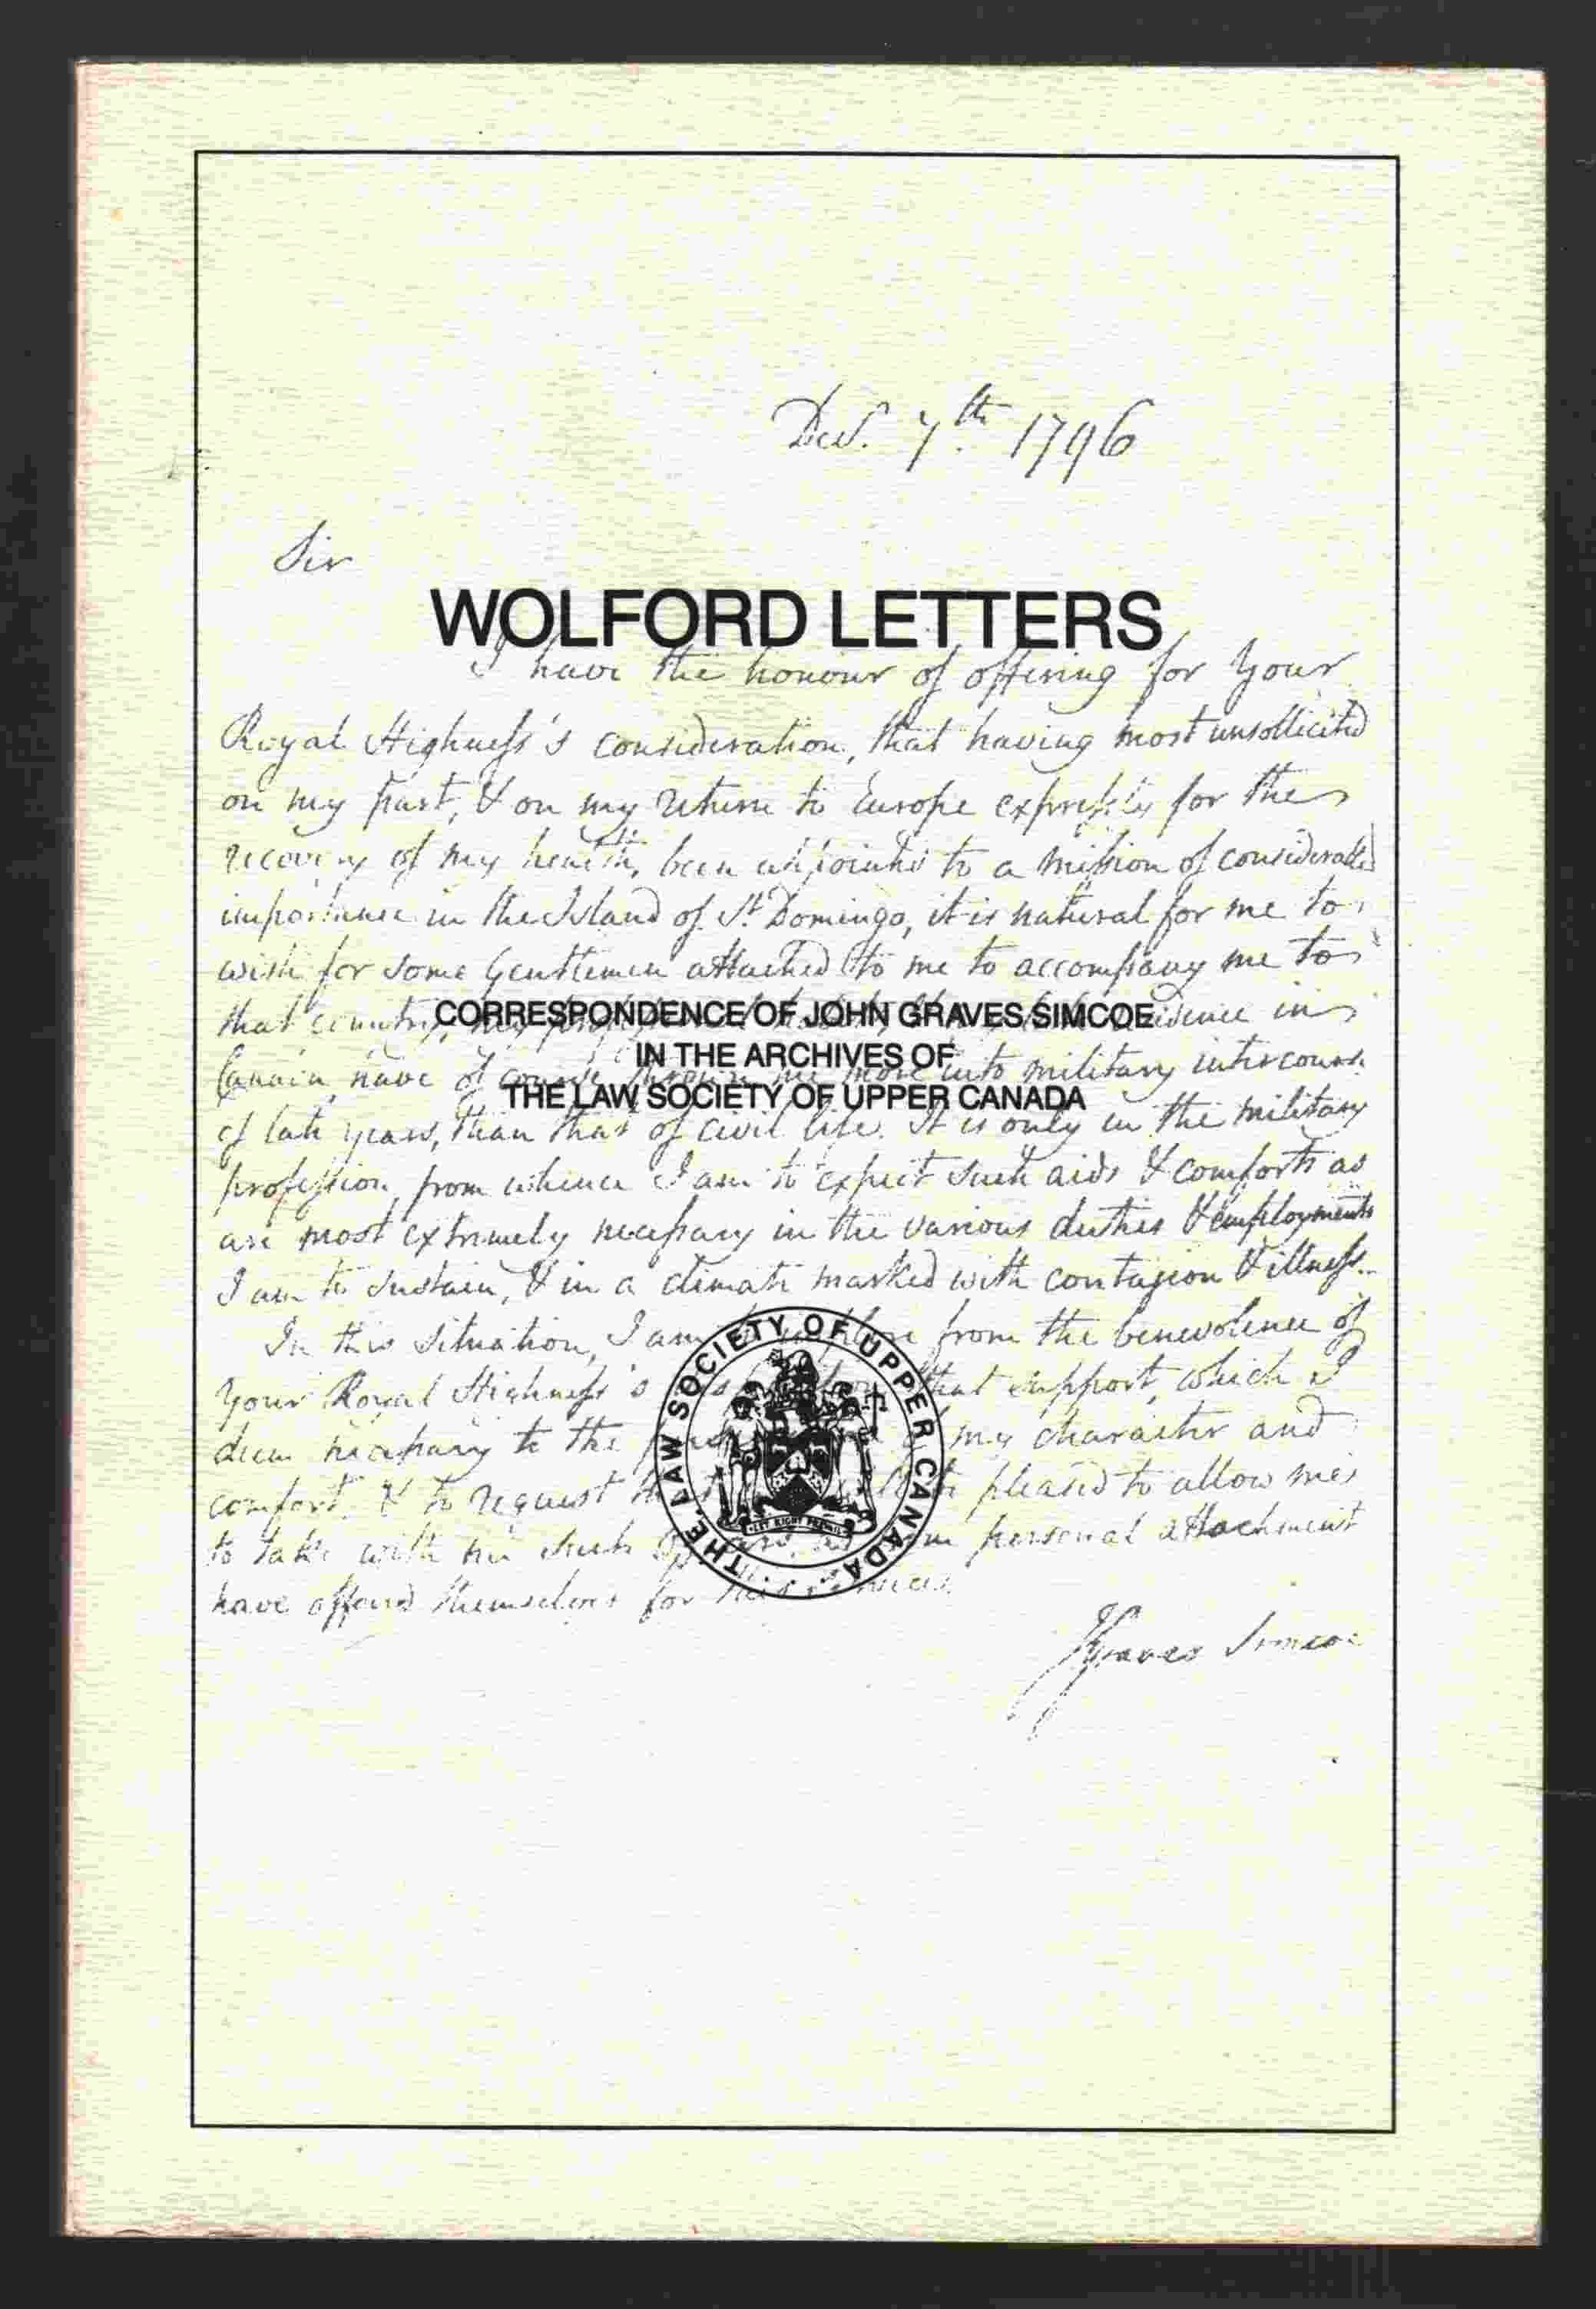 Image for Wolford Letters Correspondence of John Graves Simcoe in the Archives of the Law Society of Upper Canada